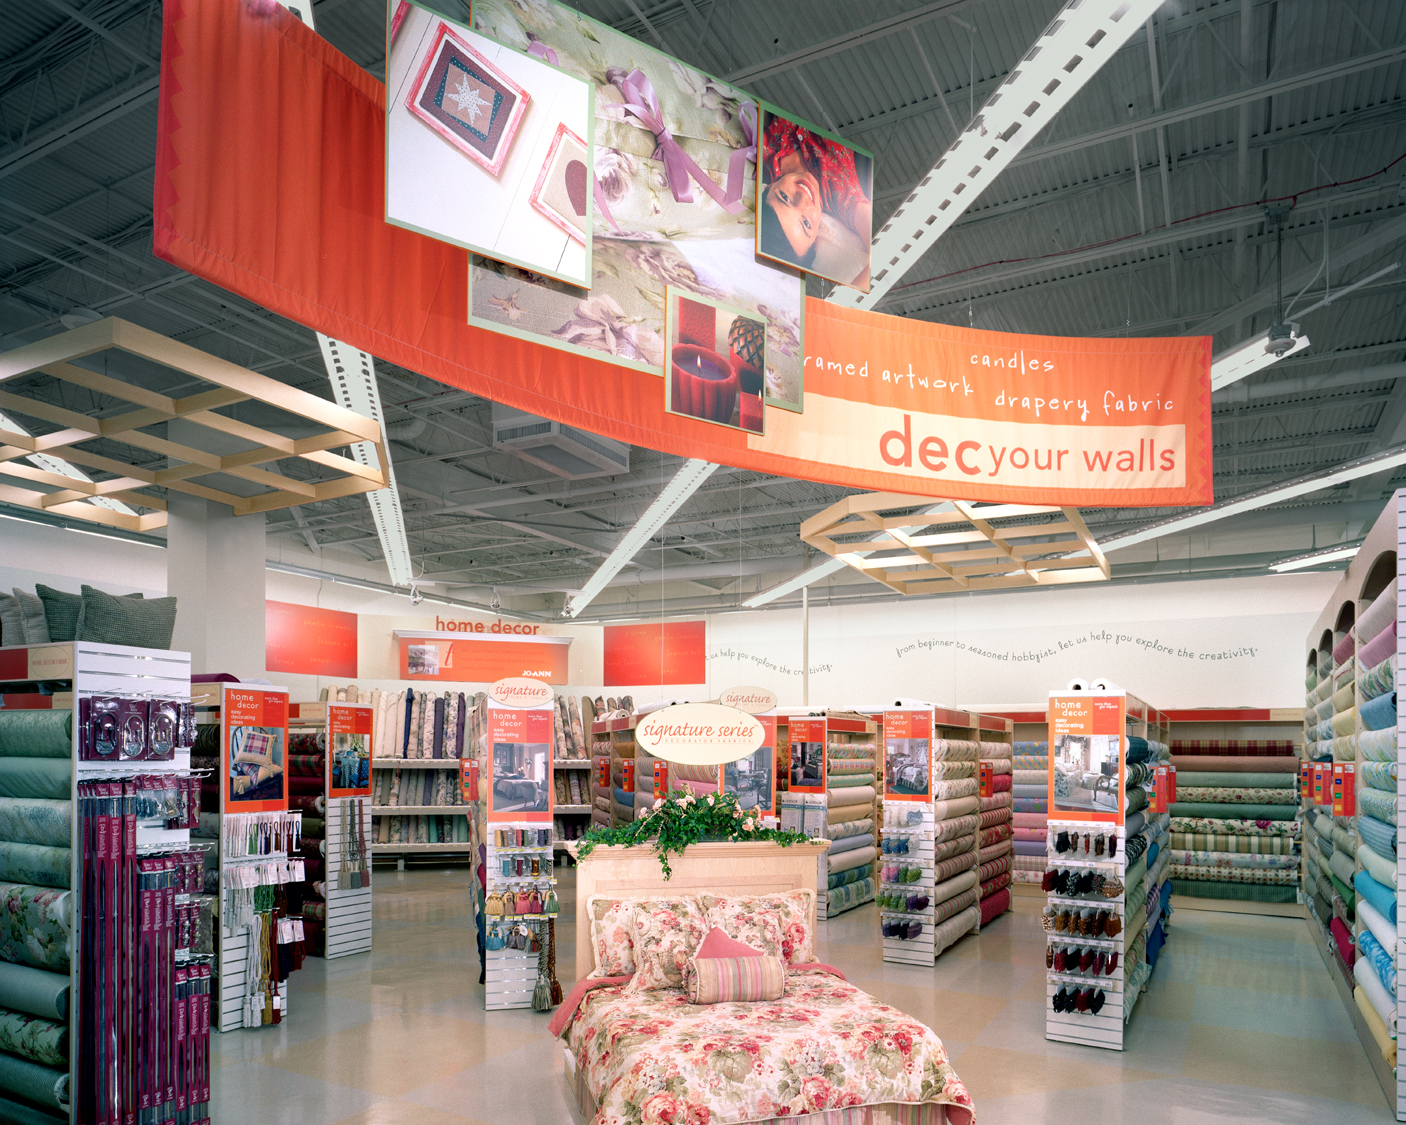 JOANN Fabric & Craft: Shop the largest assortment of fabric, sewing, quilting, scrapbooking, knitting, crochet, jewelry and other crafts. Find local JOANN Fabric & Craft Stores near you!